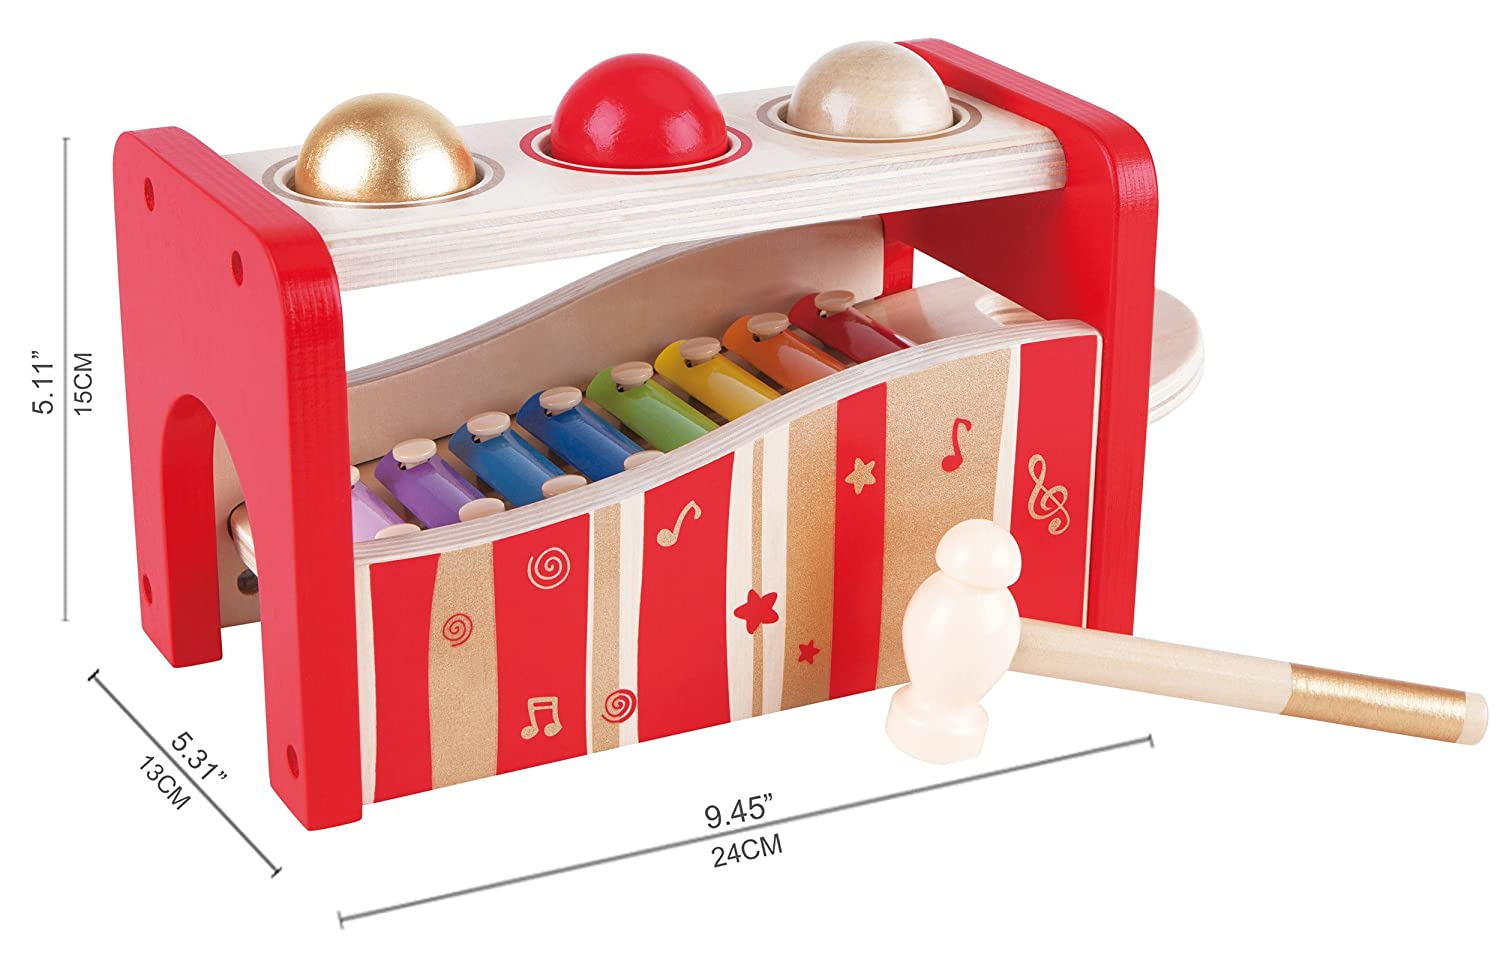 Award Winning Durable Wooden Musical Pounding Toy for Toddlers Multifunctional and Bright Colours E0305 Hape Pound /& Tap Bench with Slide Out Xylophone